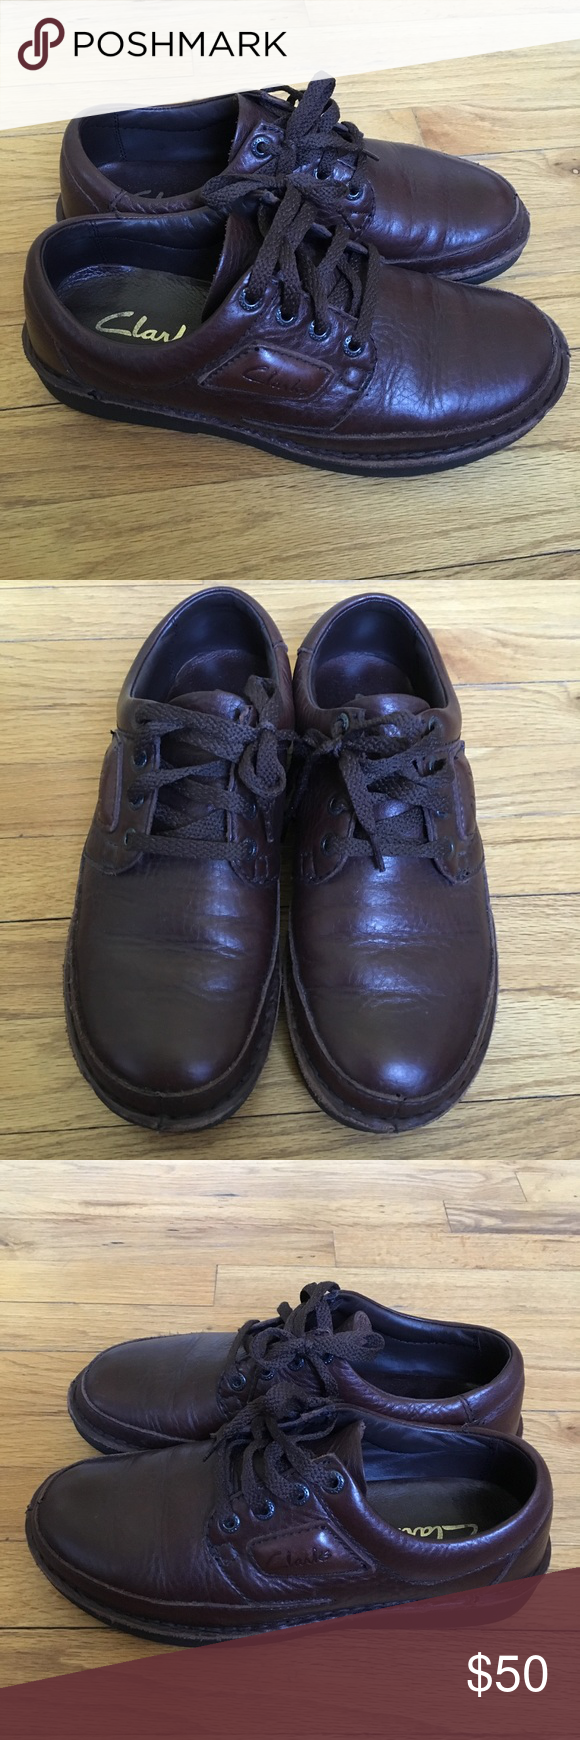 Clarks Natureveldt Men's Shoes Brown color. Size 9 1/2 Wide. With a